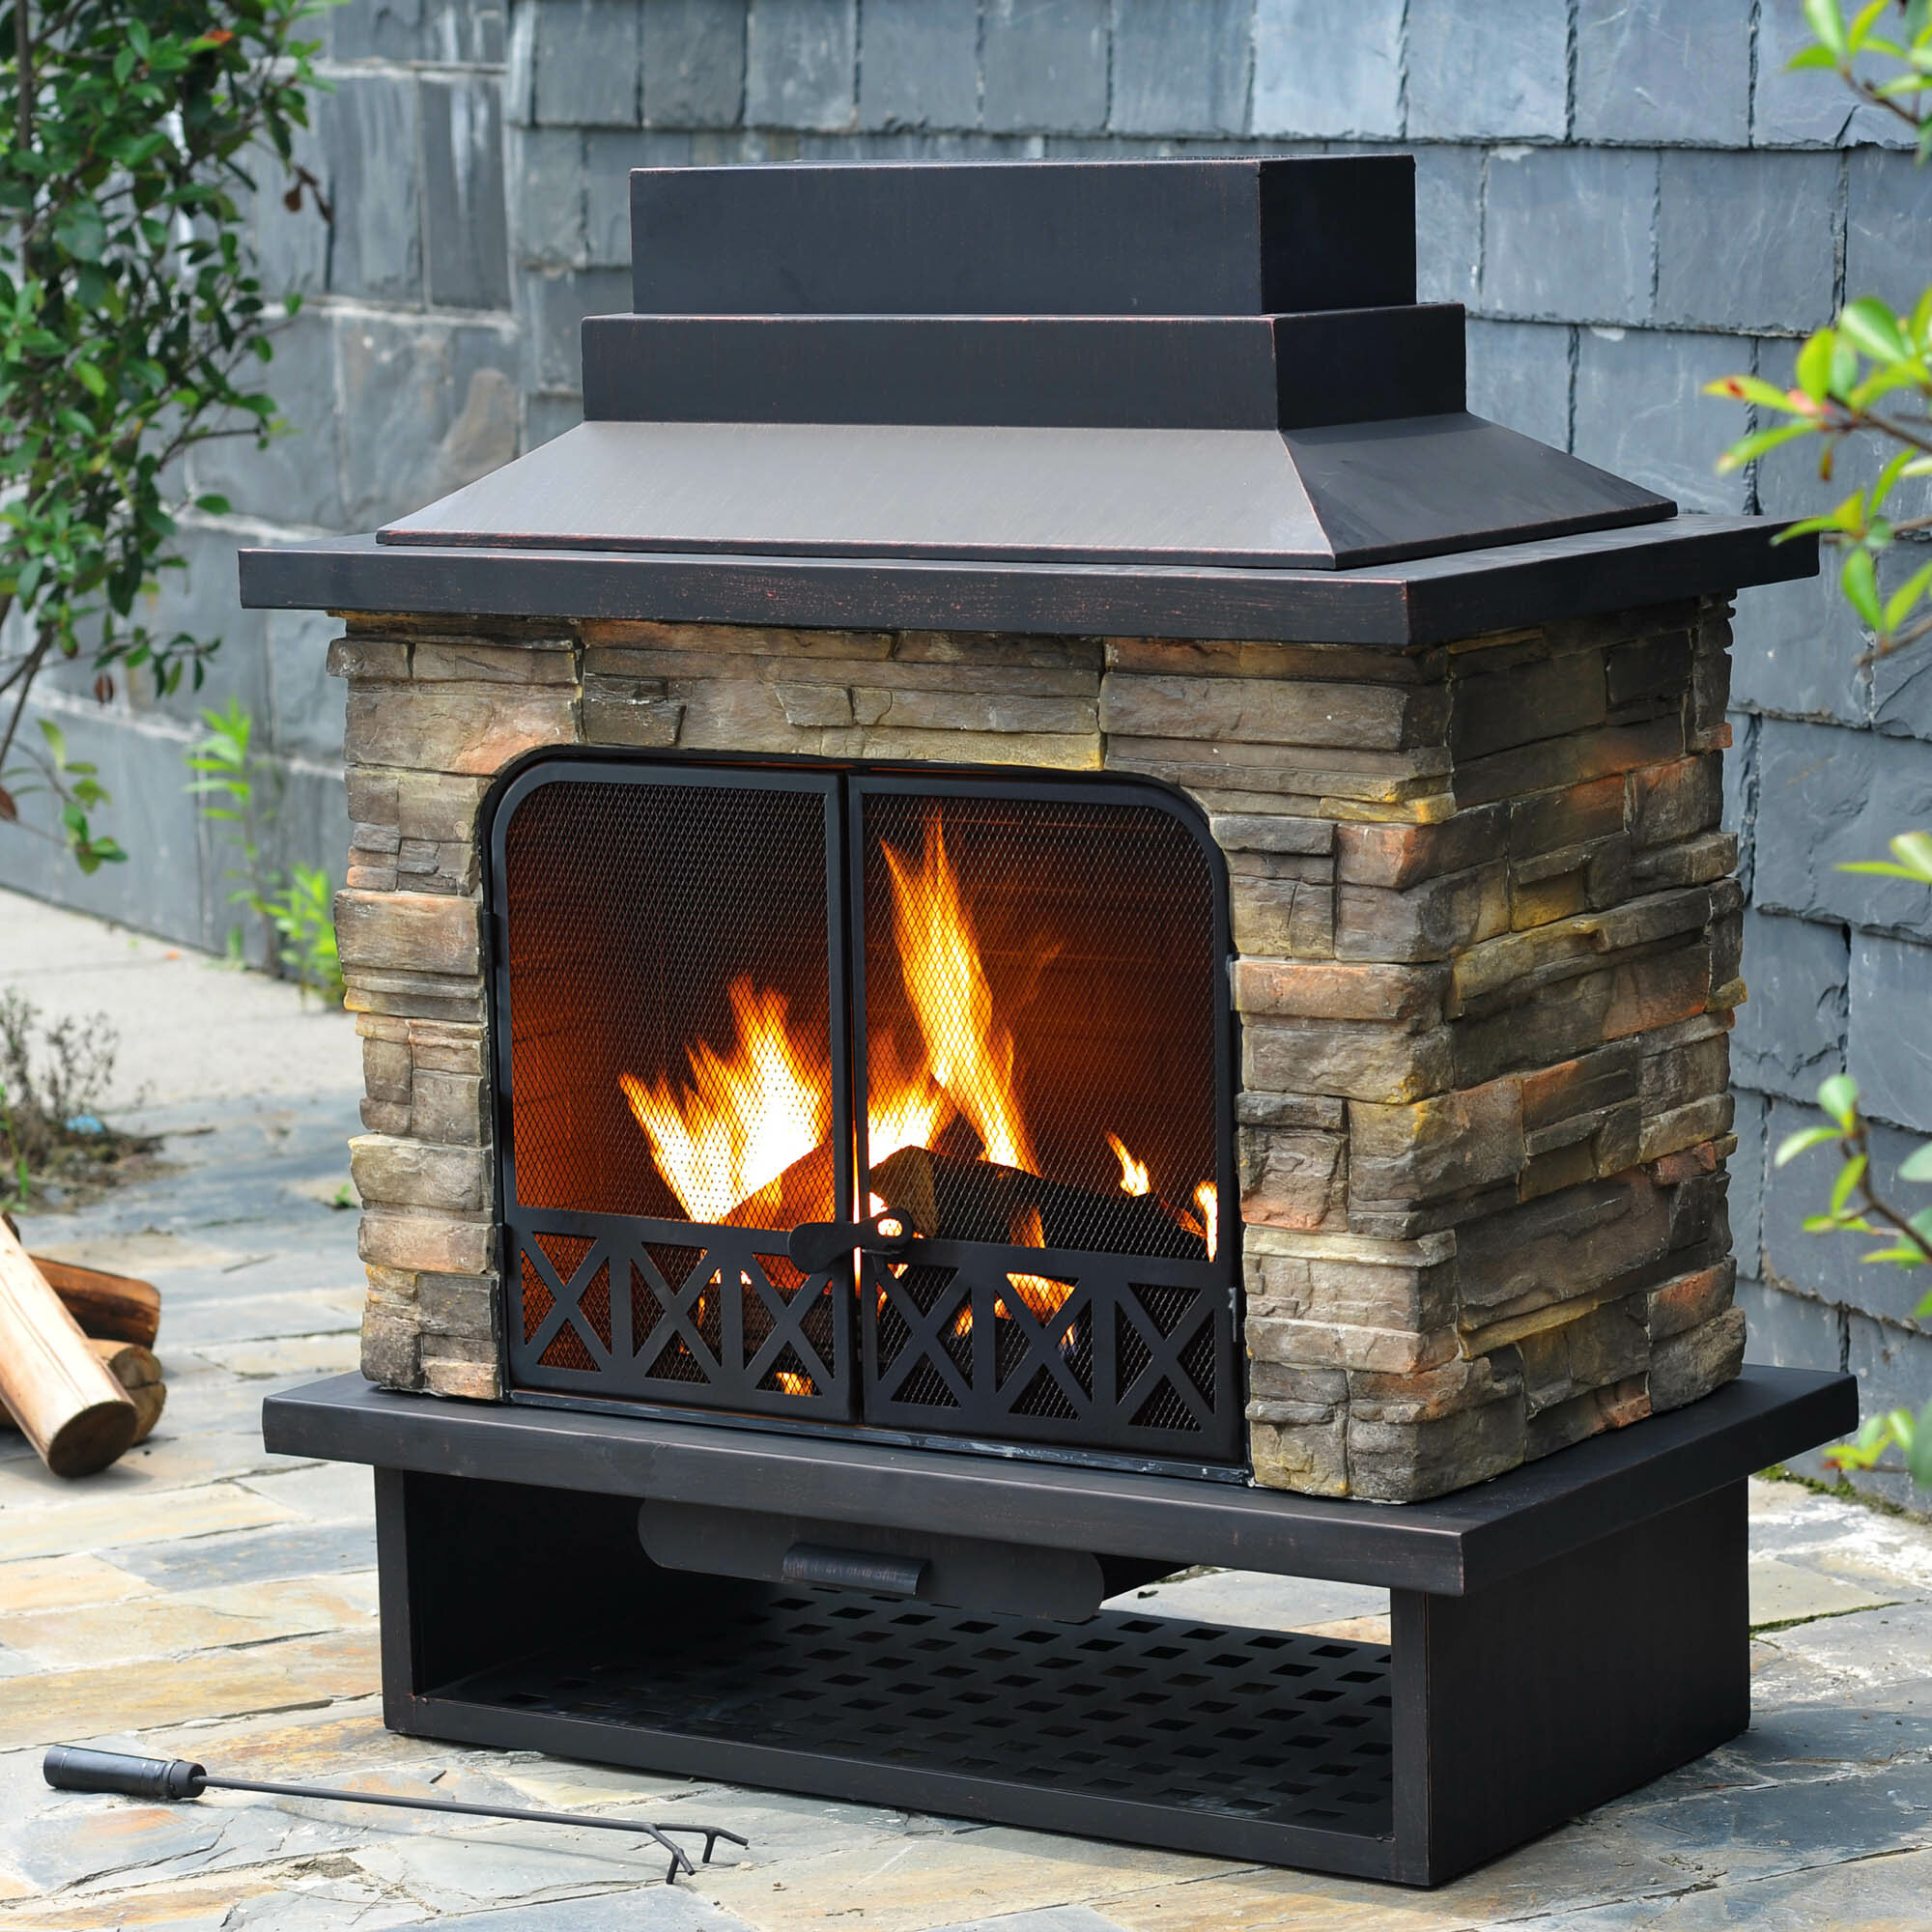 a adds fireplace tabletop inspirational touch outdoor awesome casatessa striking sparo com rustic with nu of the design this bold flame bomelconsult just on so its bought ethanol i cute